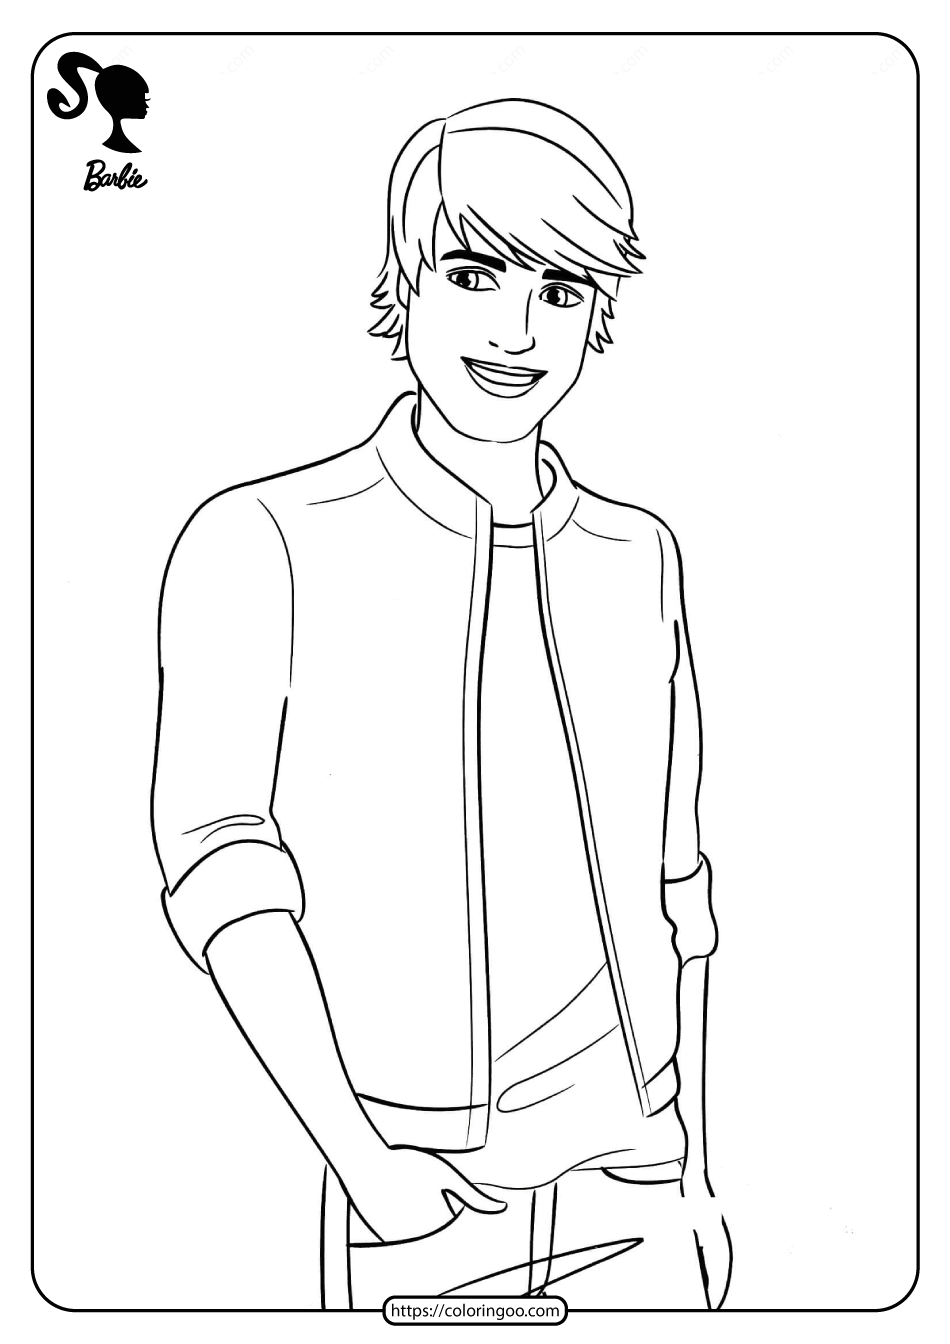 Free Printable Barbie (Ken) Coloring Pages 09